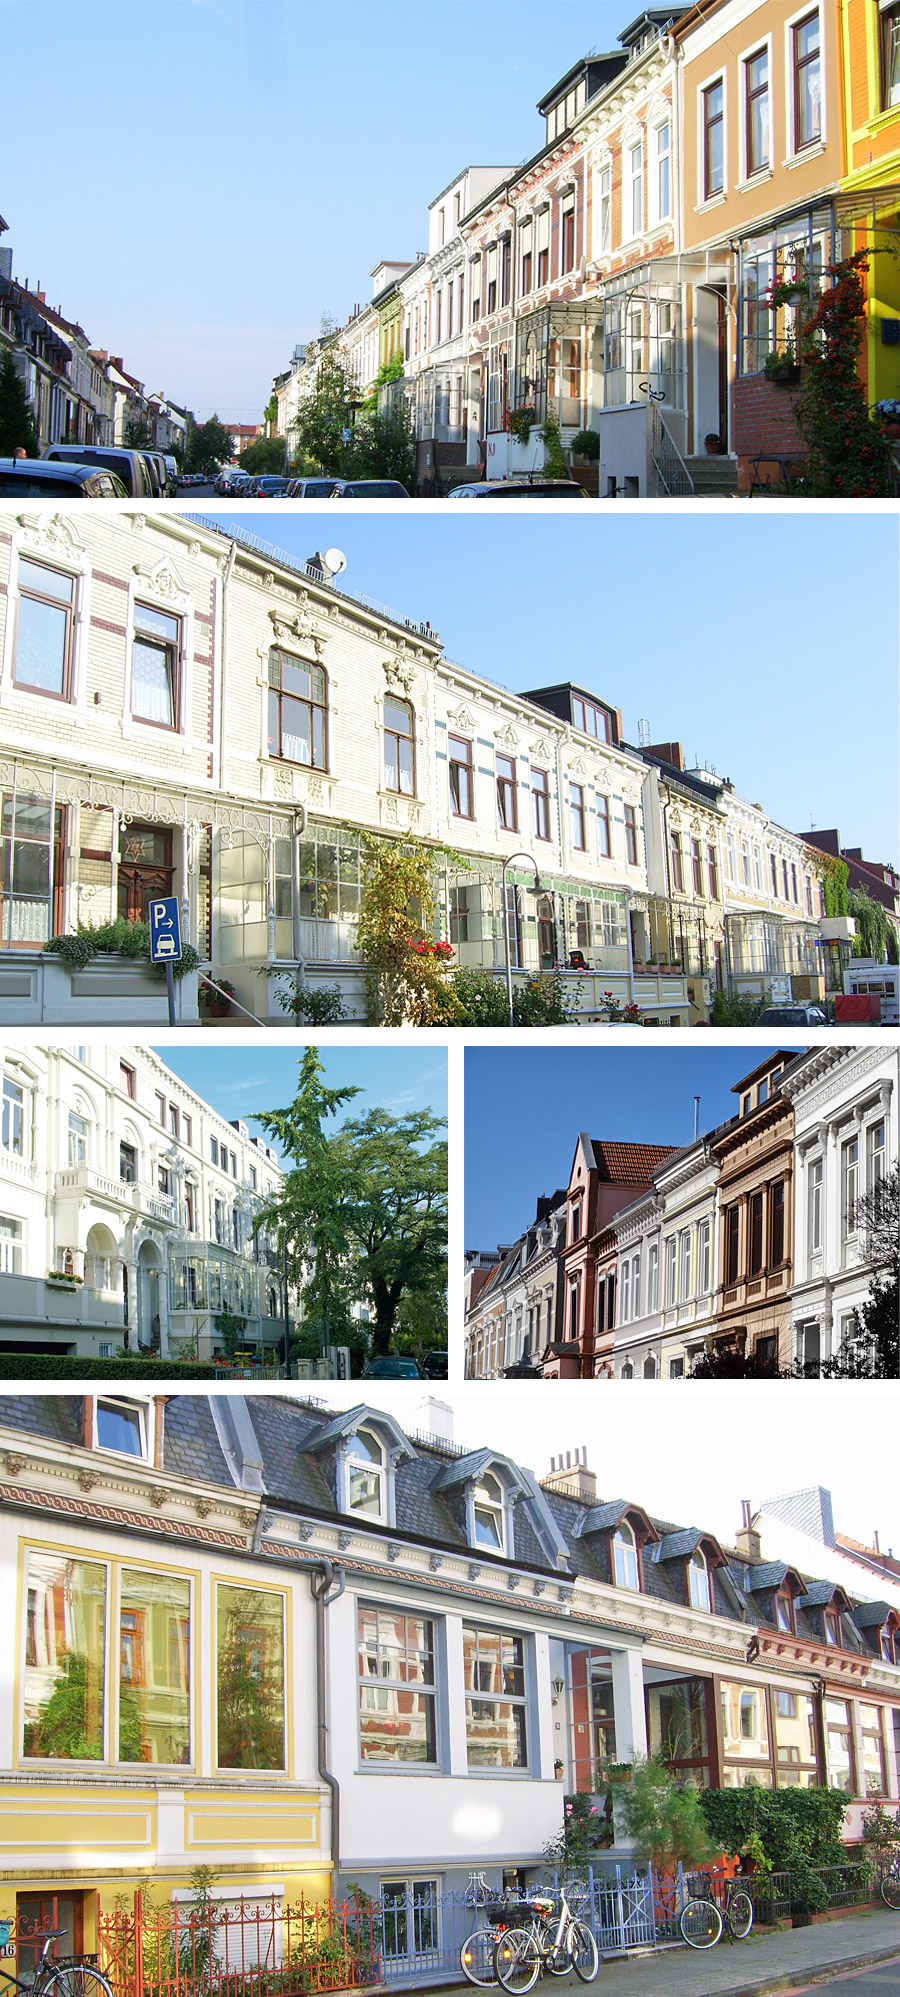 Street views showing the exteriors of various Bremen houses in Ostertor and Neustadt